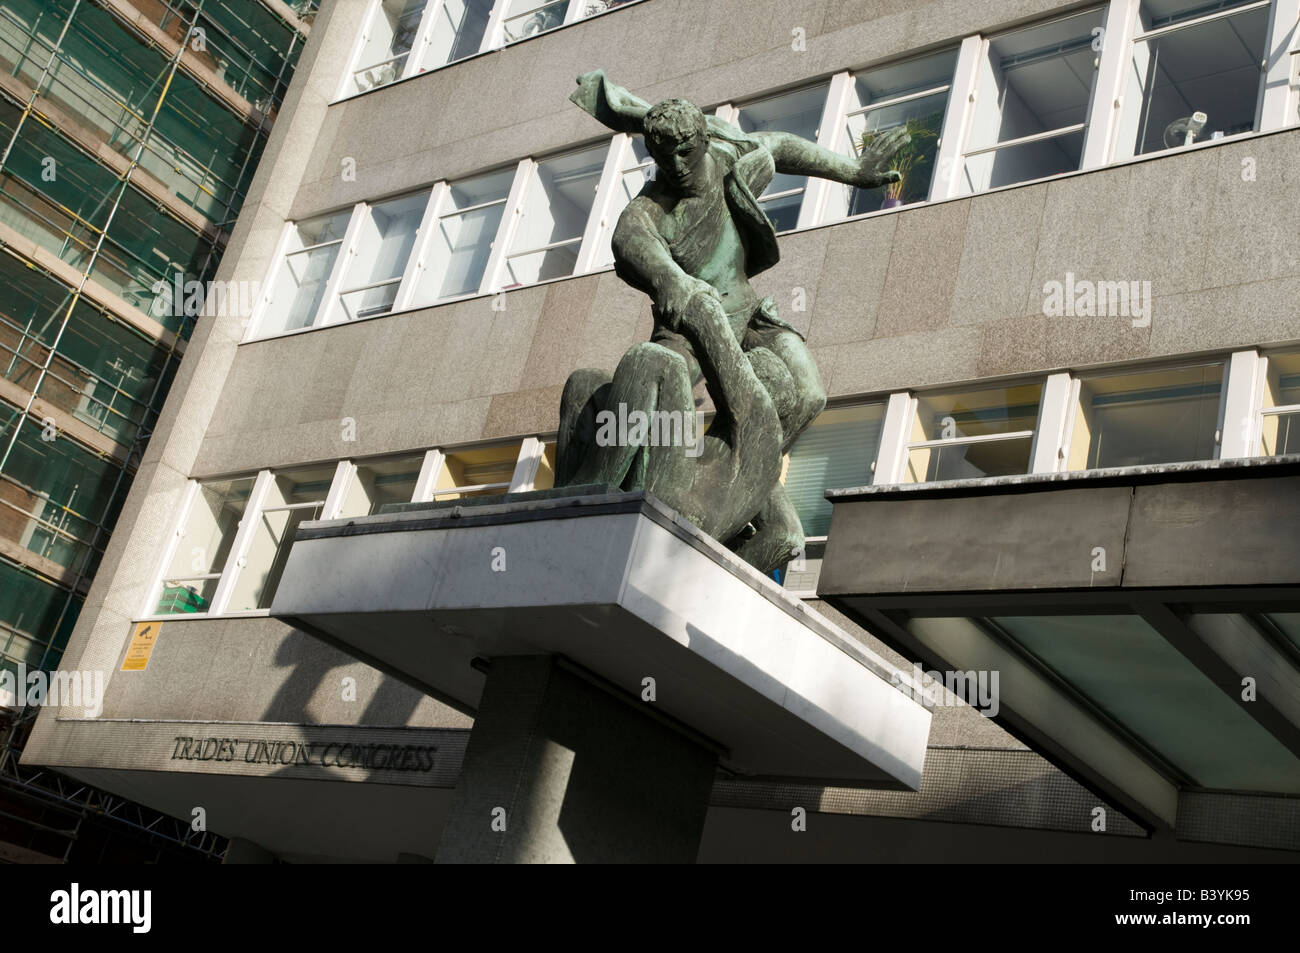 'The spirit of trade unionism' sculpture by Bernard Meadows outside Trades Union Congress building London - Stock Image